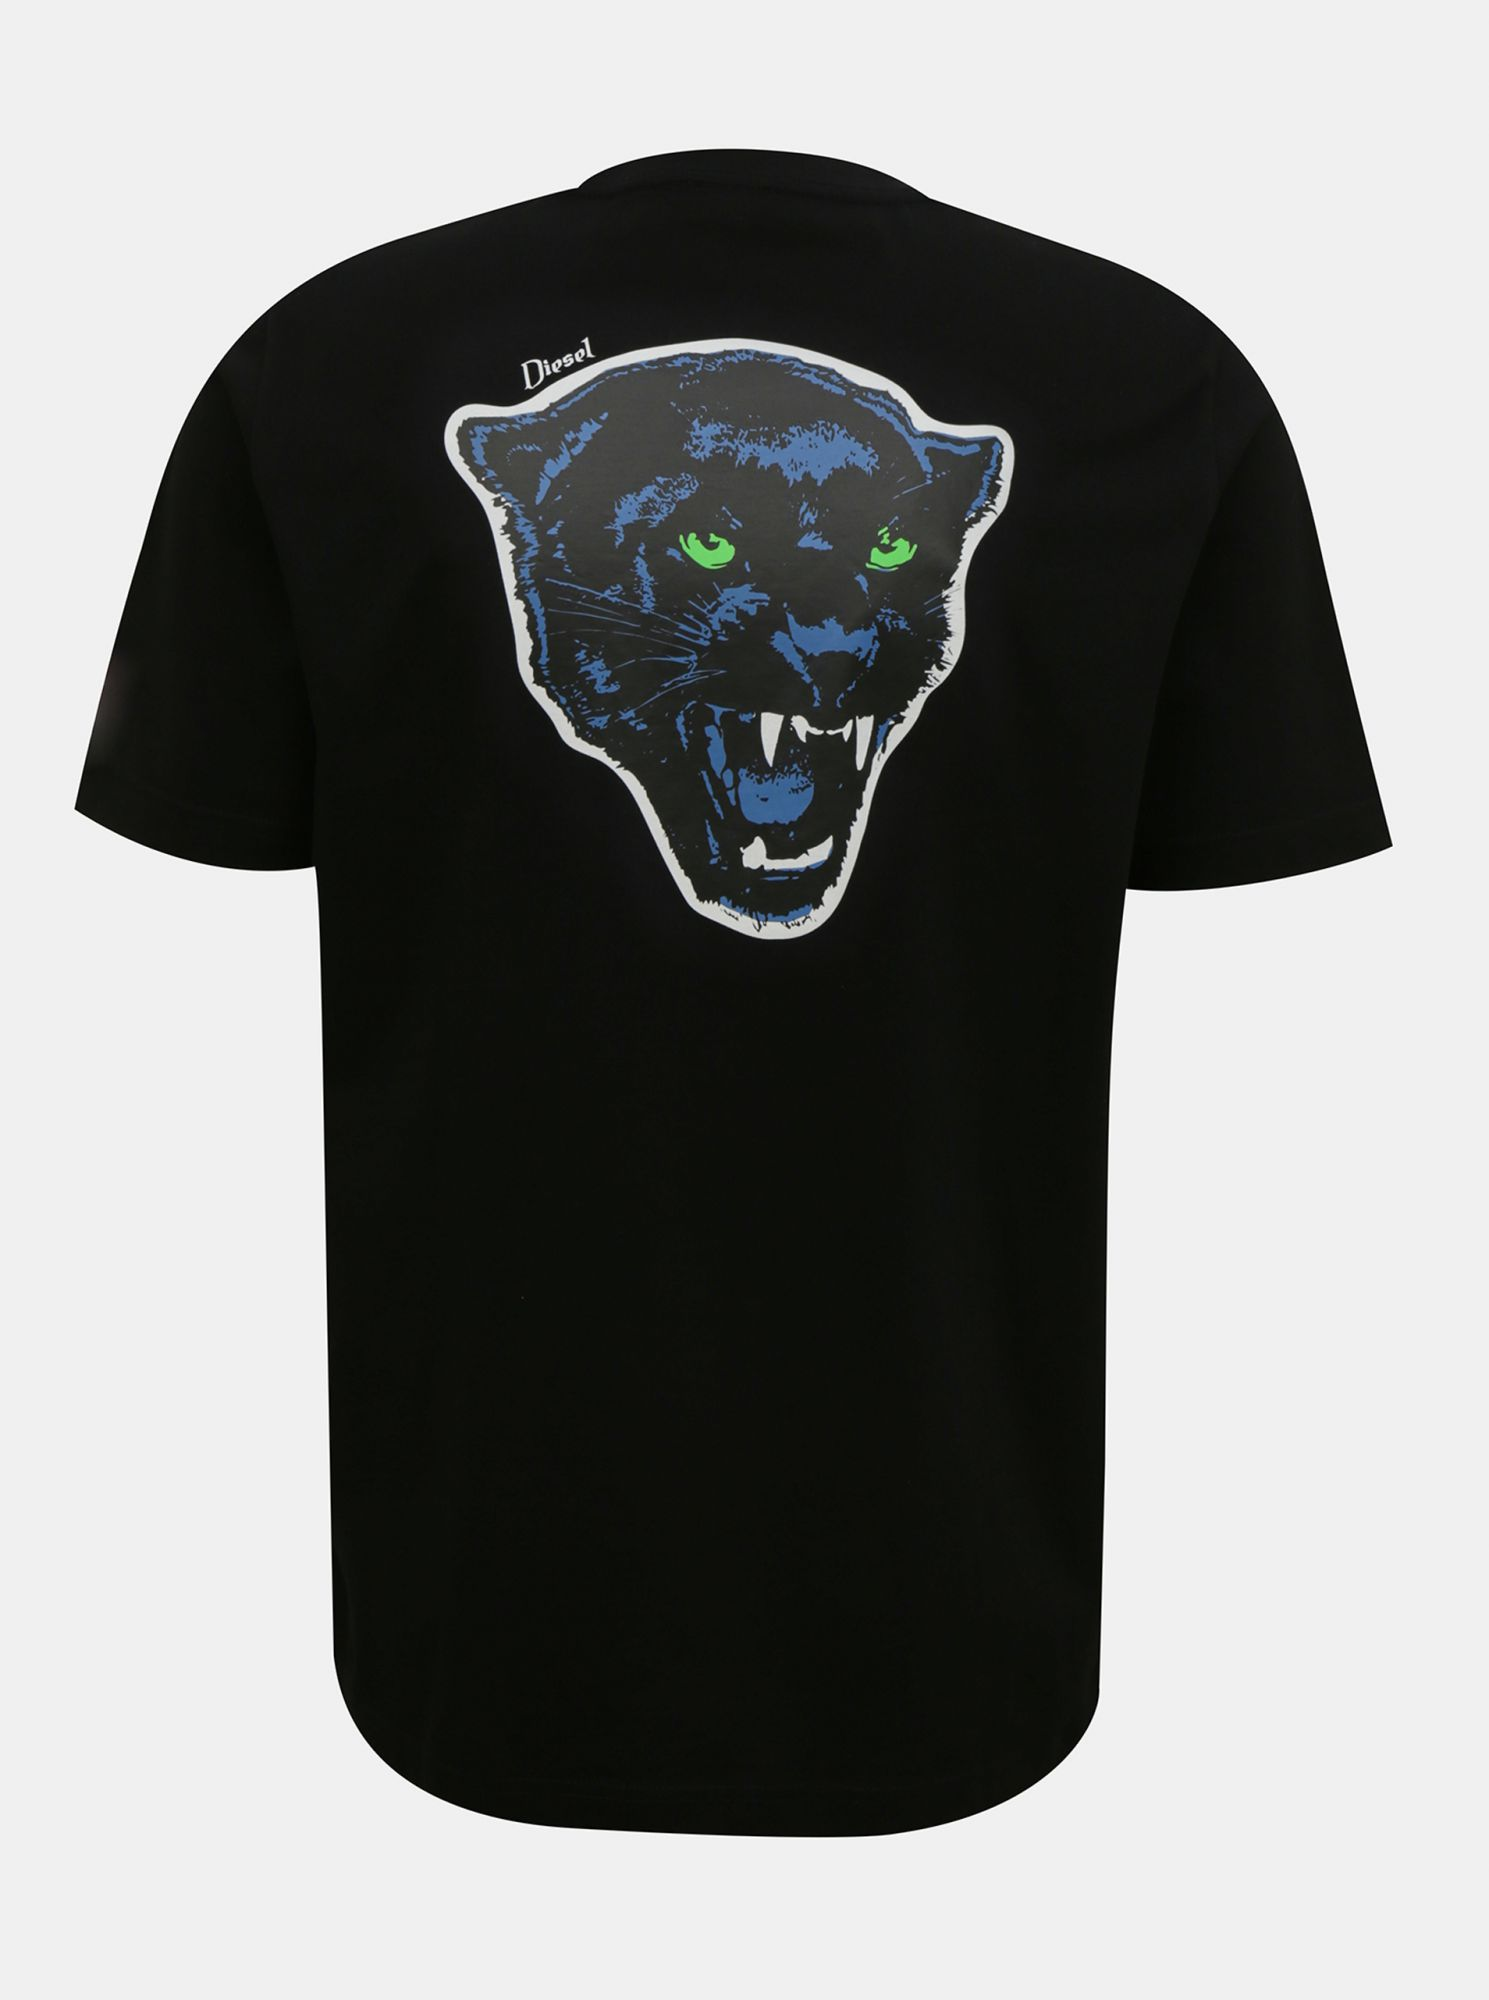 Black men's Diesel T-shirt